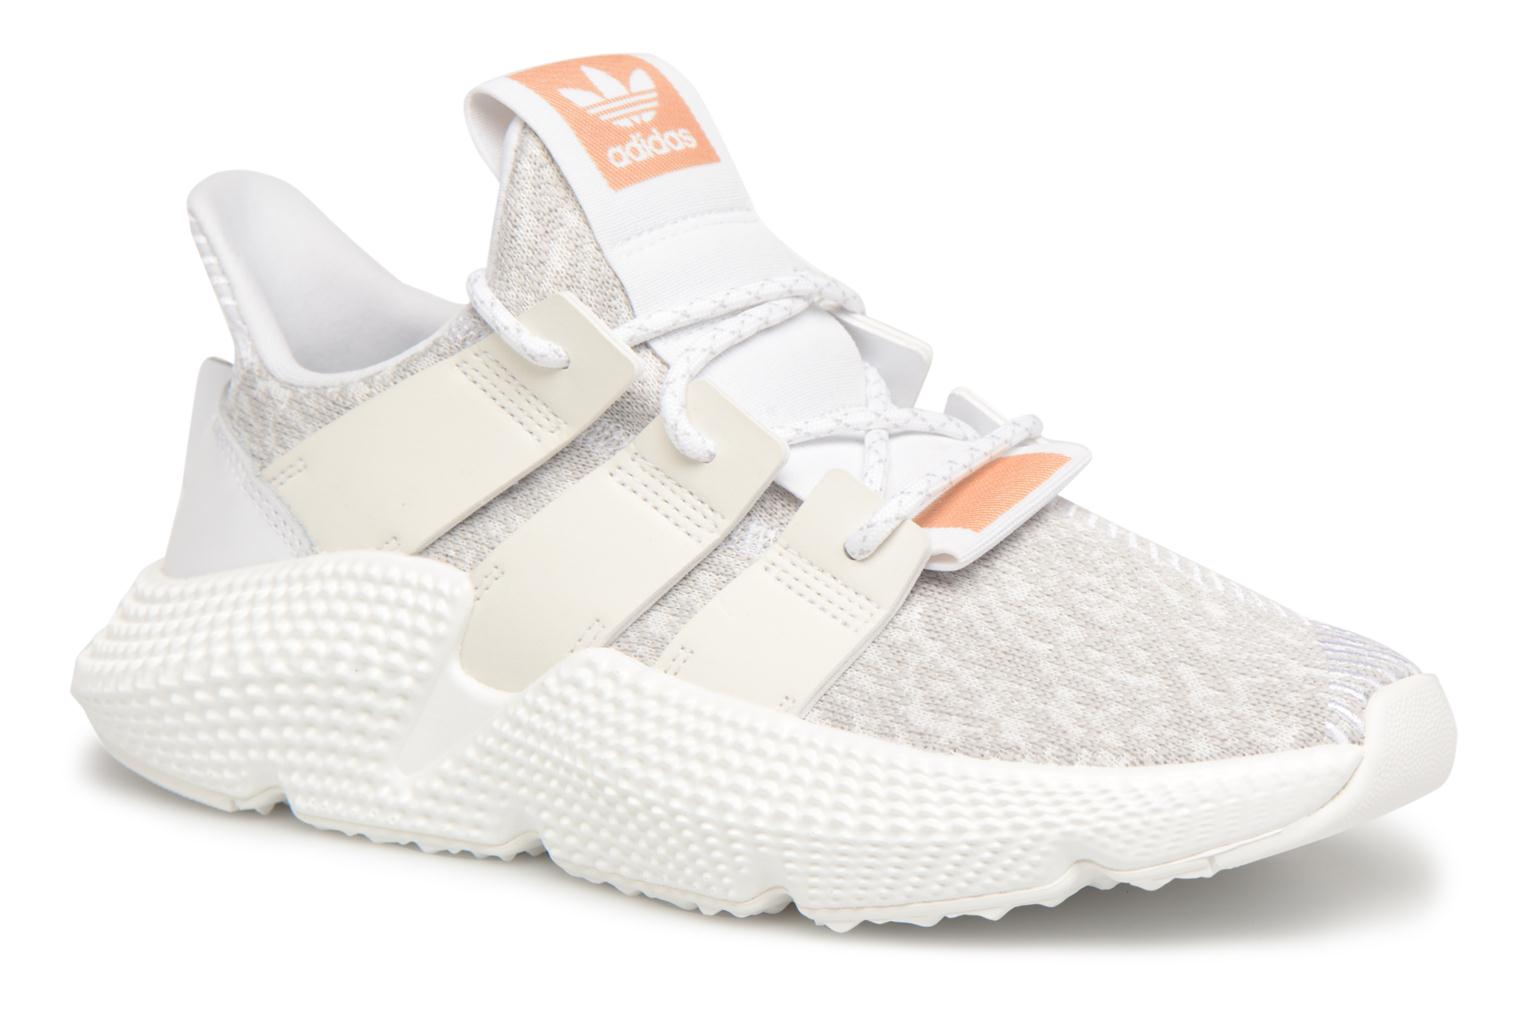 Chaussures Adidas Prophere blanc Chaussures Naturläufer vertes Casual femme Chaussures à lacets grises femme Chaussures Waldläufer blanches Fashion femme Chaussures Waldläufer roses Casual femme Chaussures Adidas Prophere blanc fTF3RuLM1